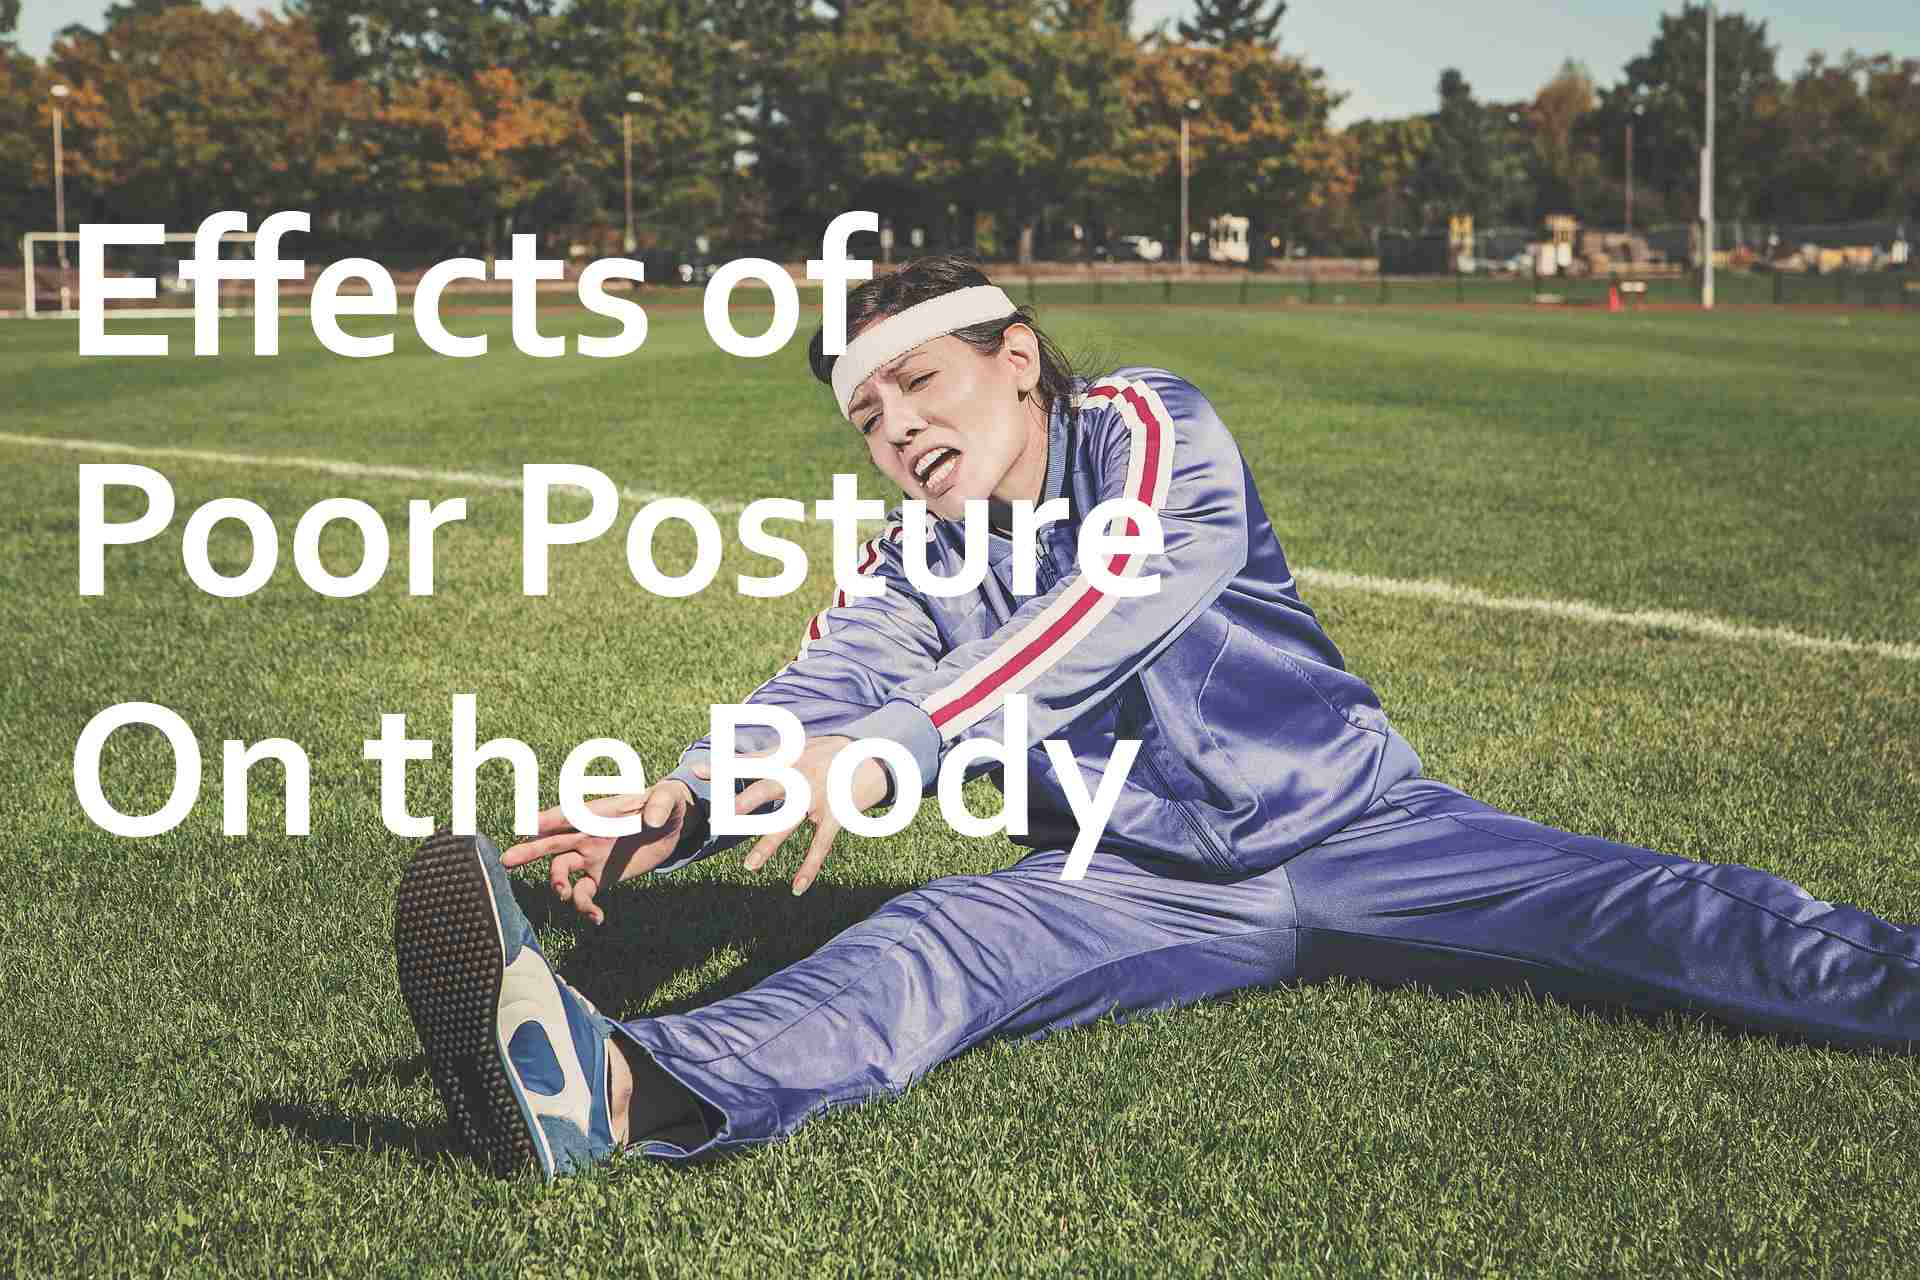 effects of poor posture on the body